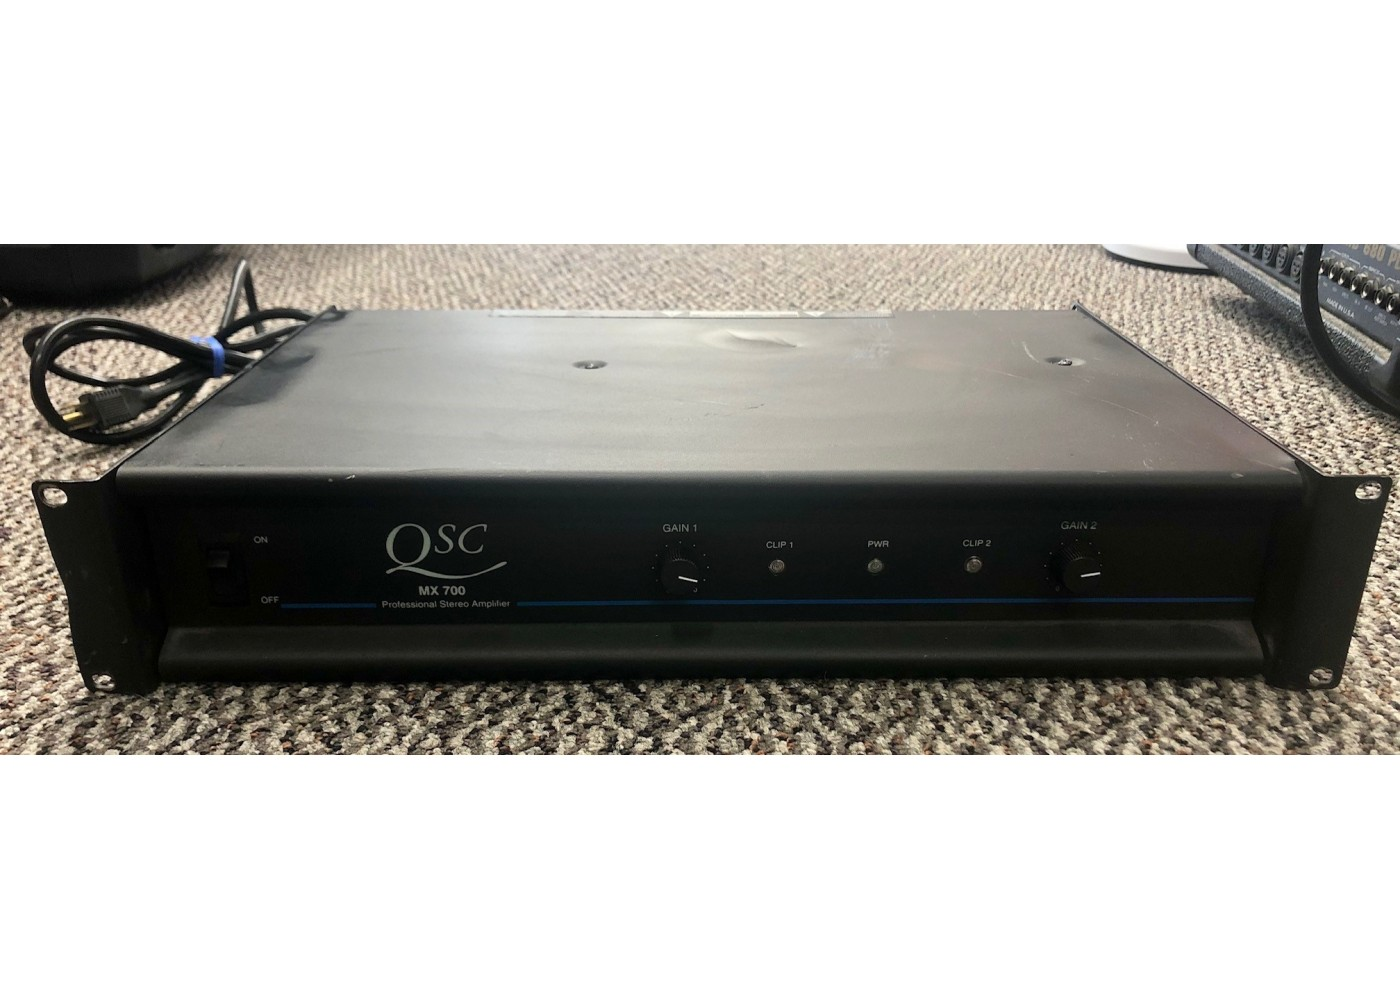 qsc mx700 2 channel professional stereo power amplifier. Black Bedroom Furniture Sets. Home Design Ideas